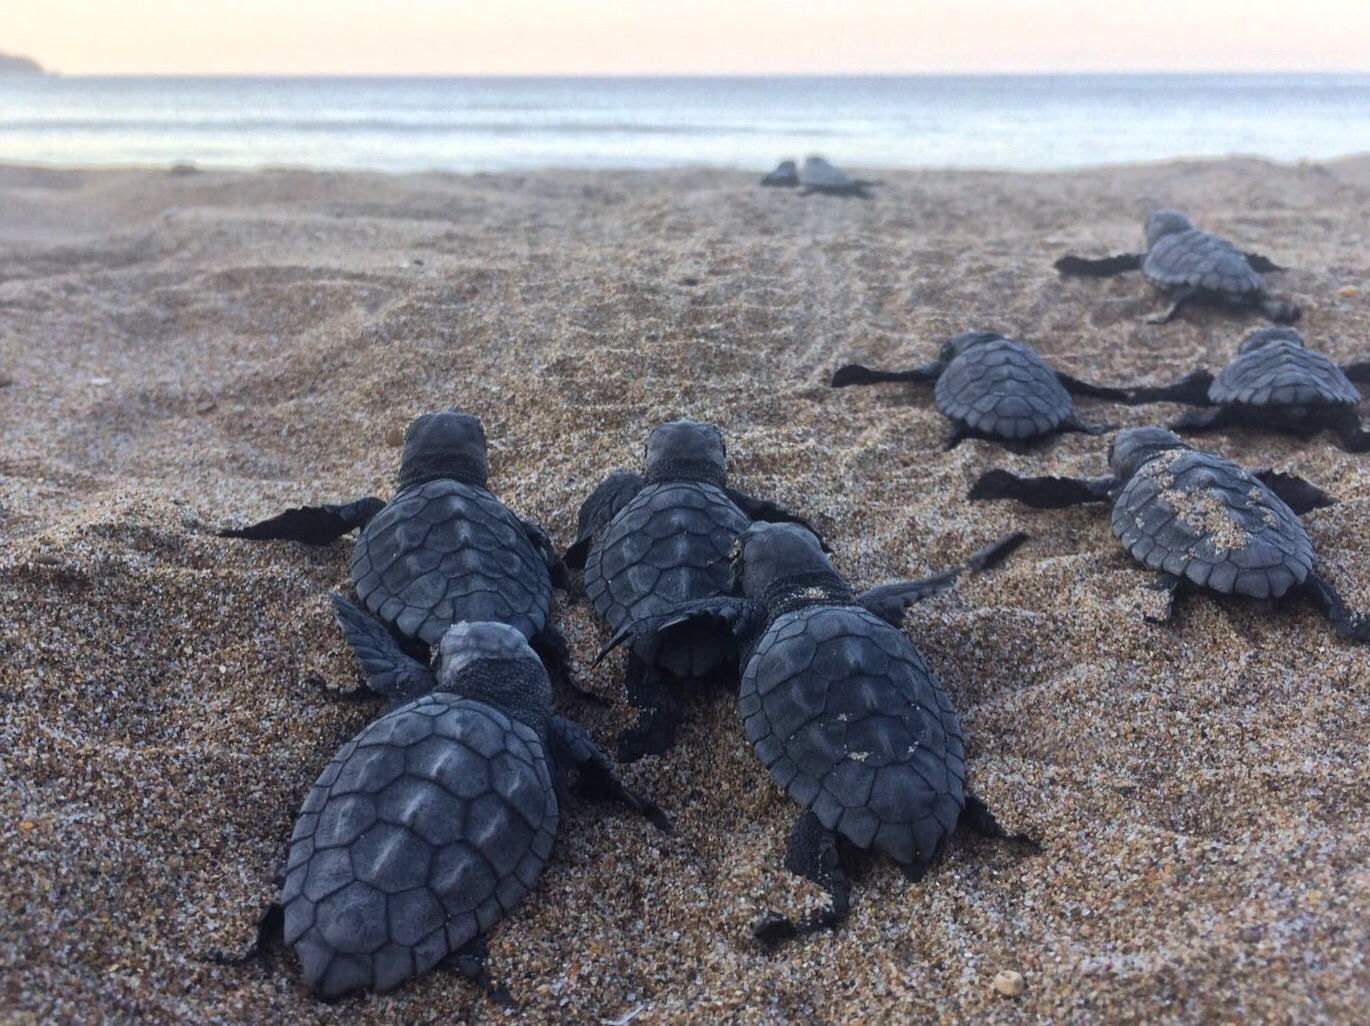 Hatchlings (Green Sea turtles) on their way to the sea. Photo: Harriet Tyley @harriettyley